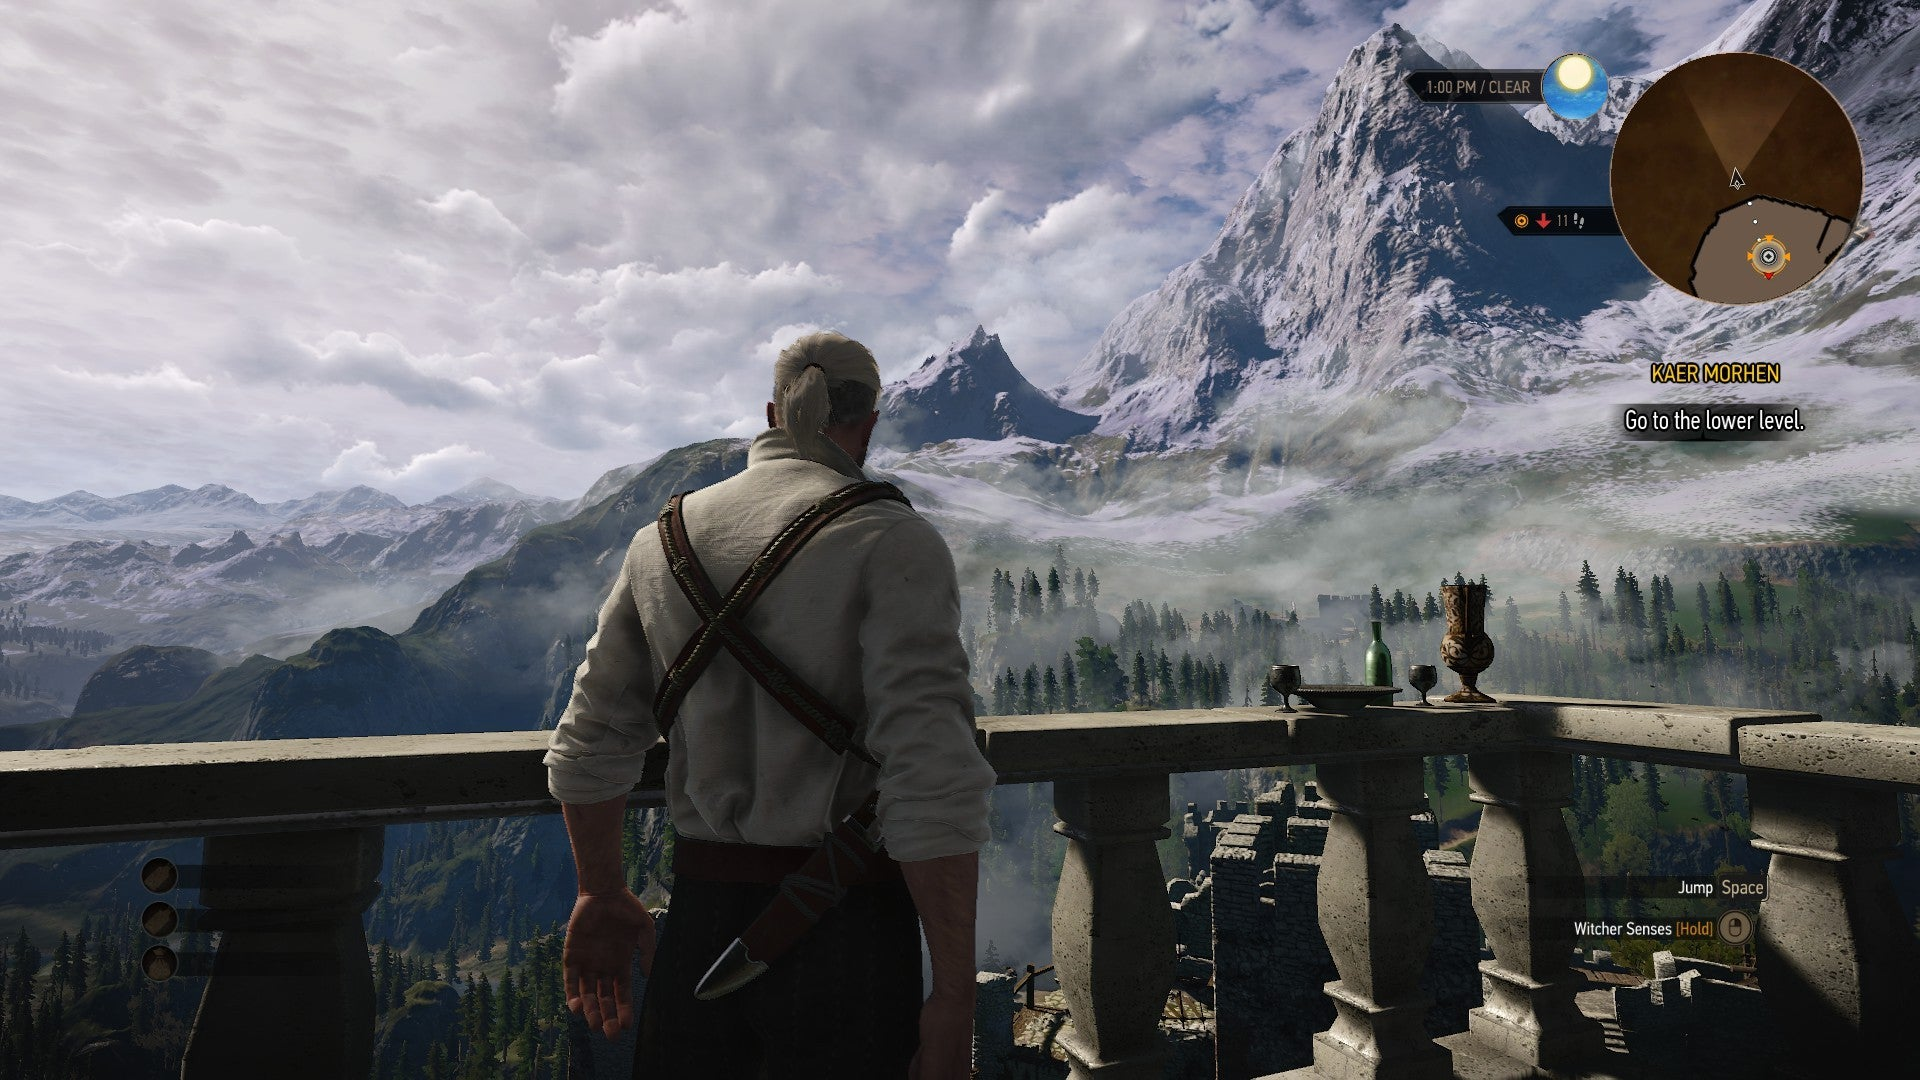 Old Iphone Wallpapers The Witcher 3 Wild Hunt Pc Review Impressions Smoothly